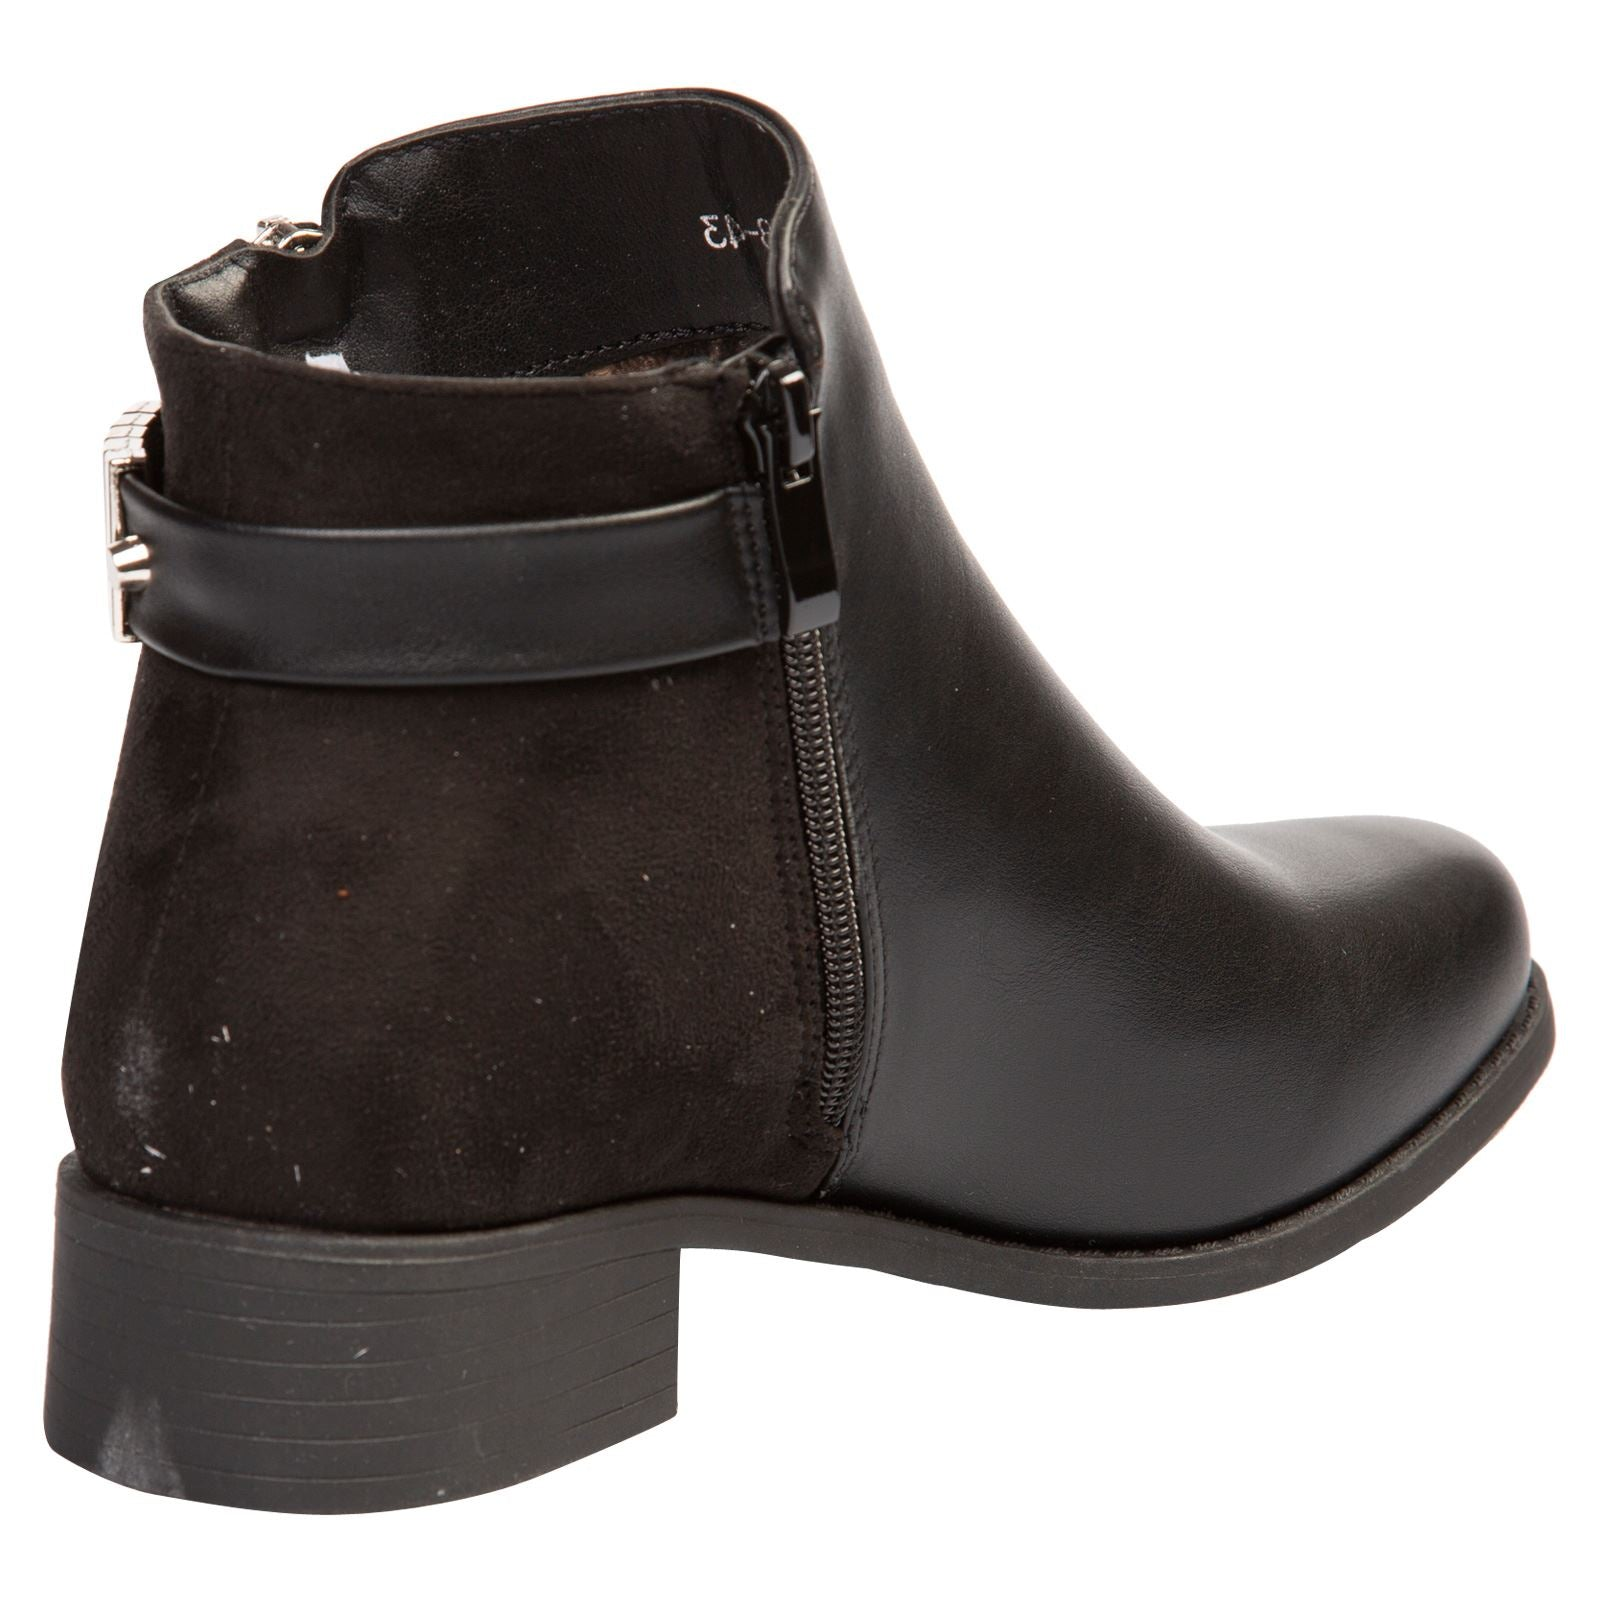 Daleyza Two-toned Ankle Boots in Black - Feet First Fashion